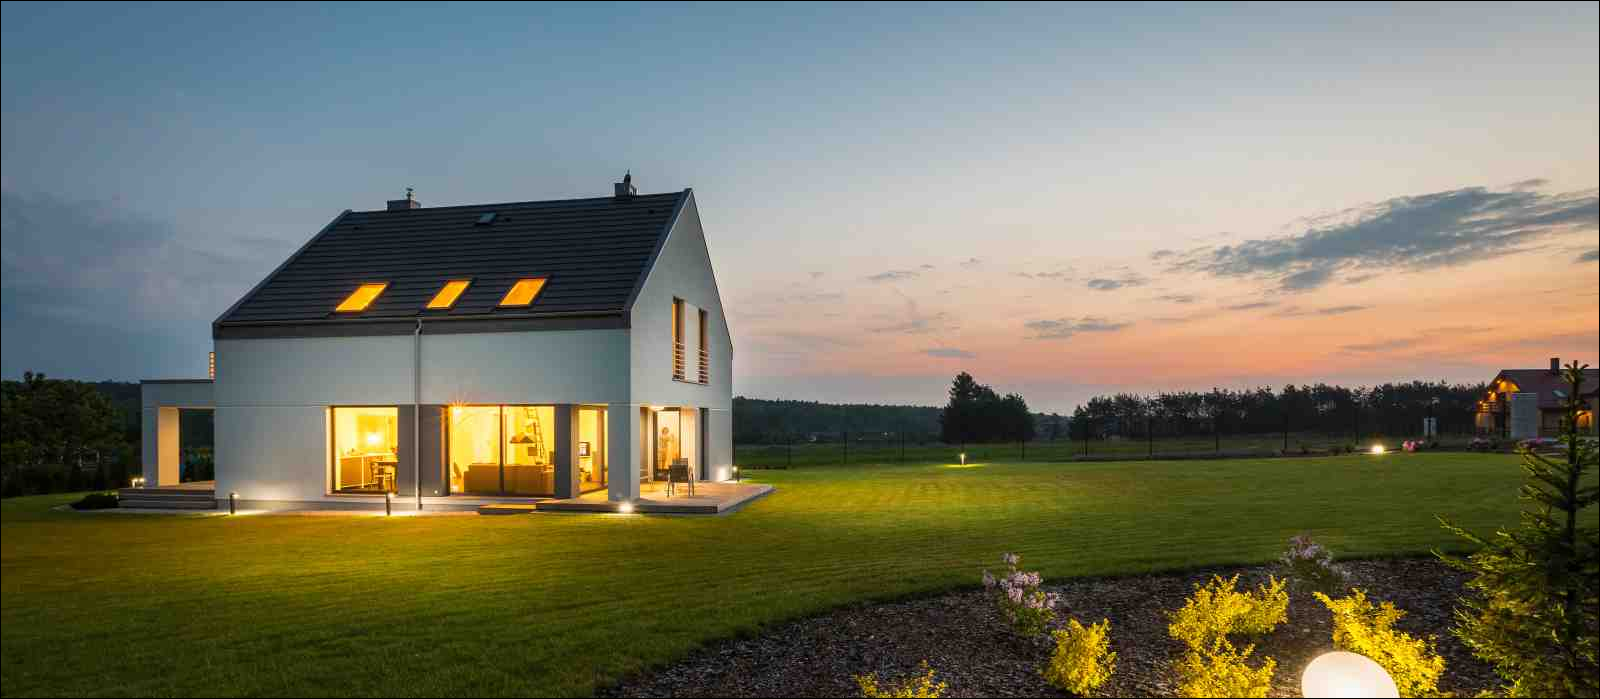 Photo of modern house with outdoor lighting, at night